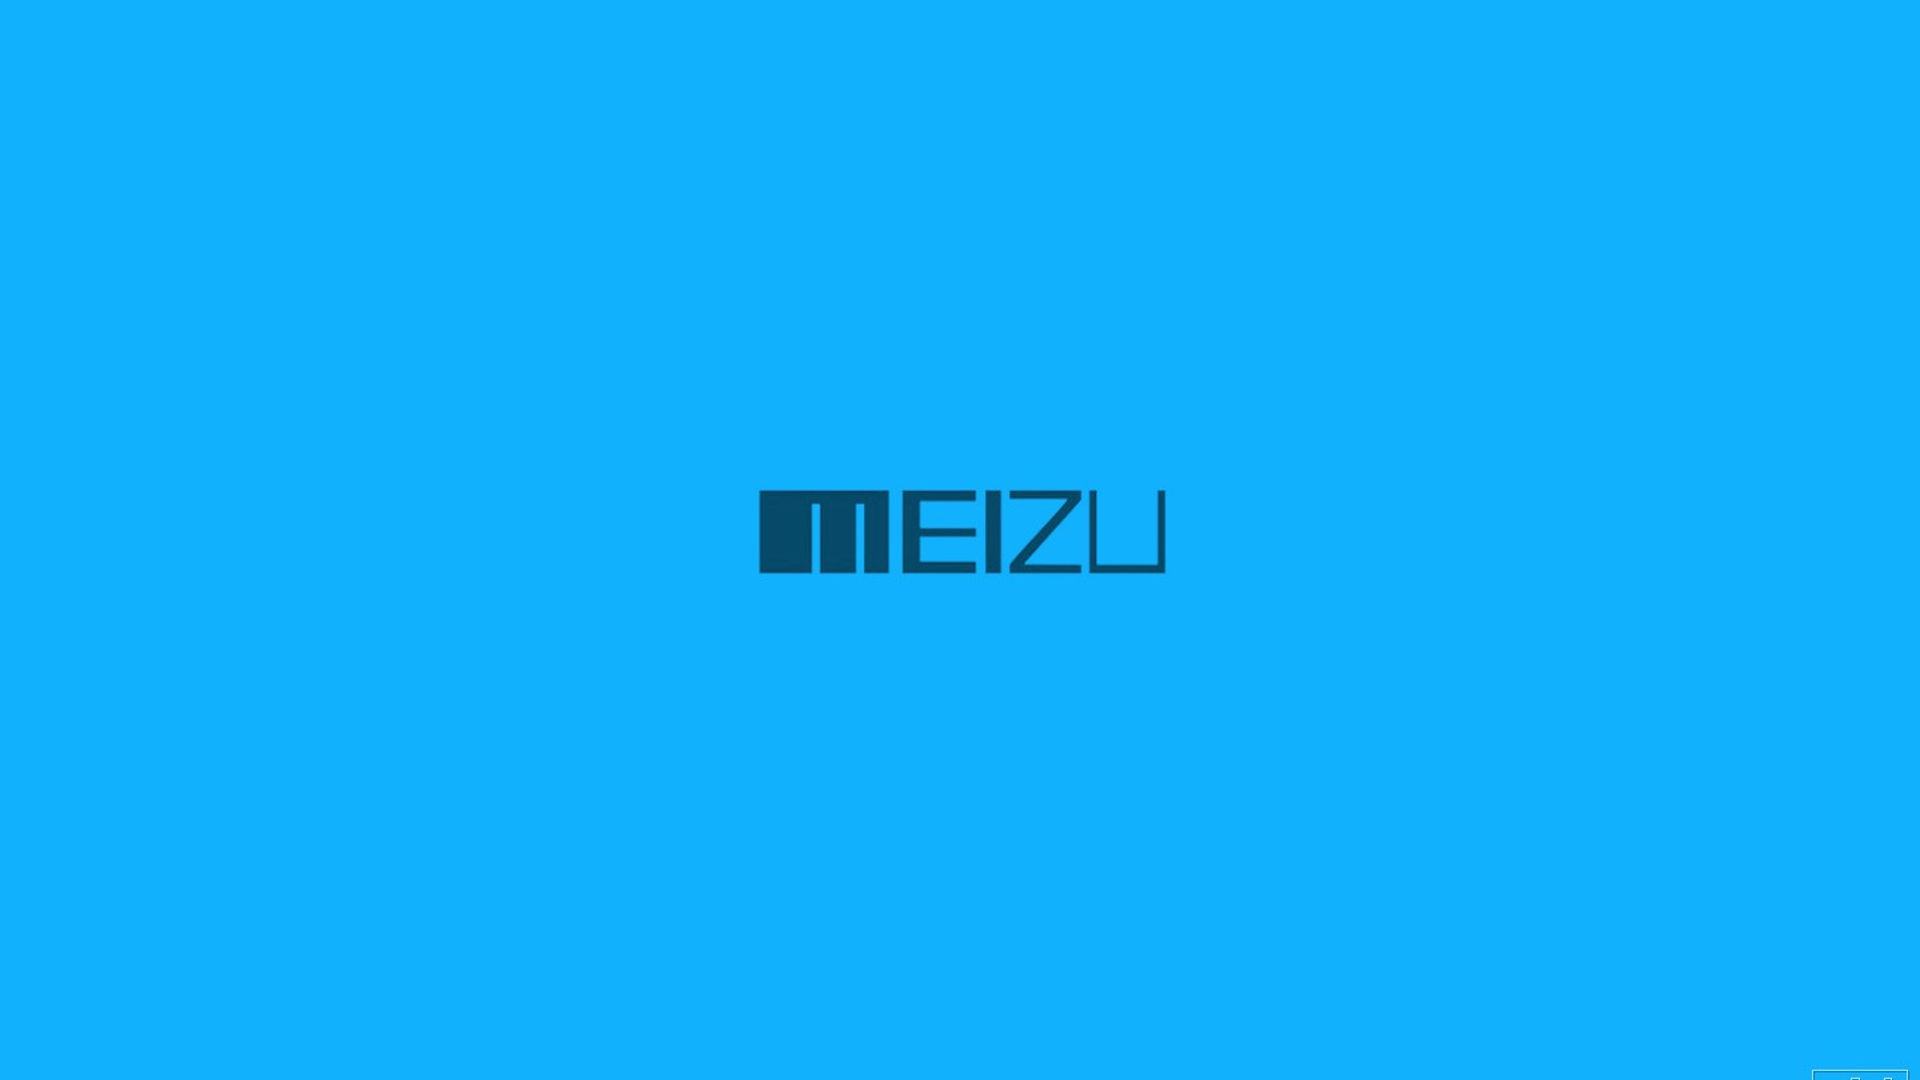 Meizu 15 trio, a budget smartphone, to be unveiled on April 22